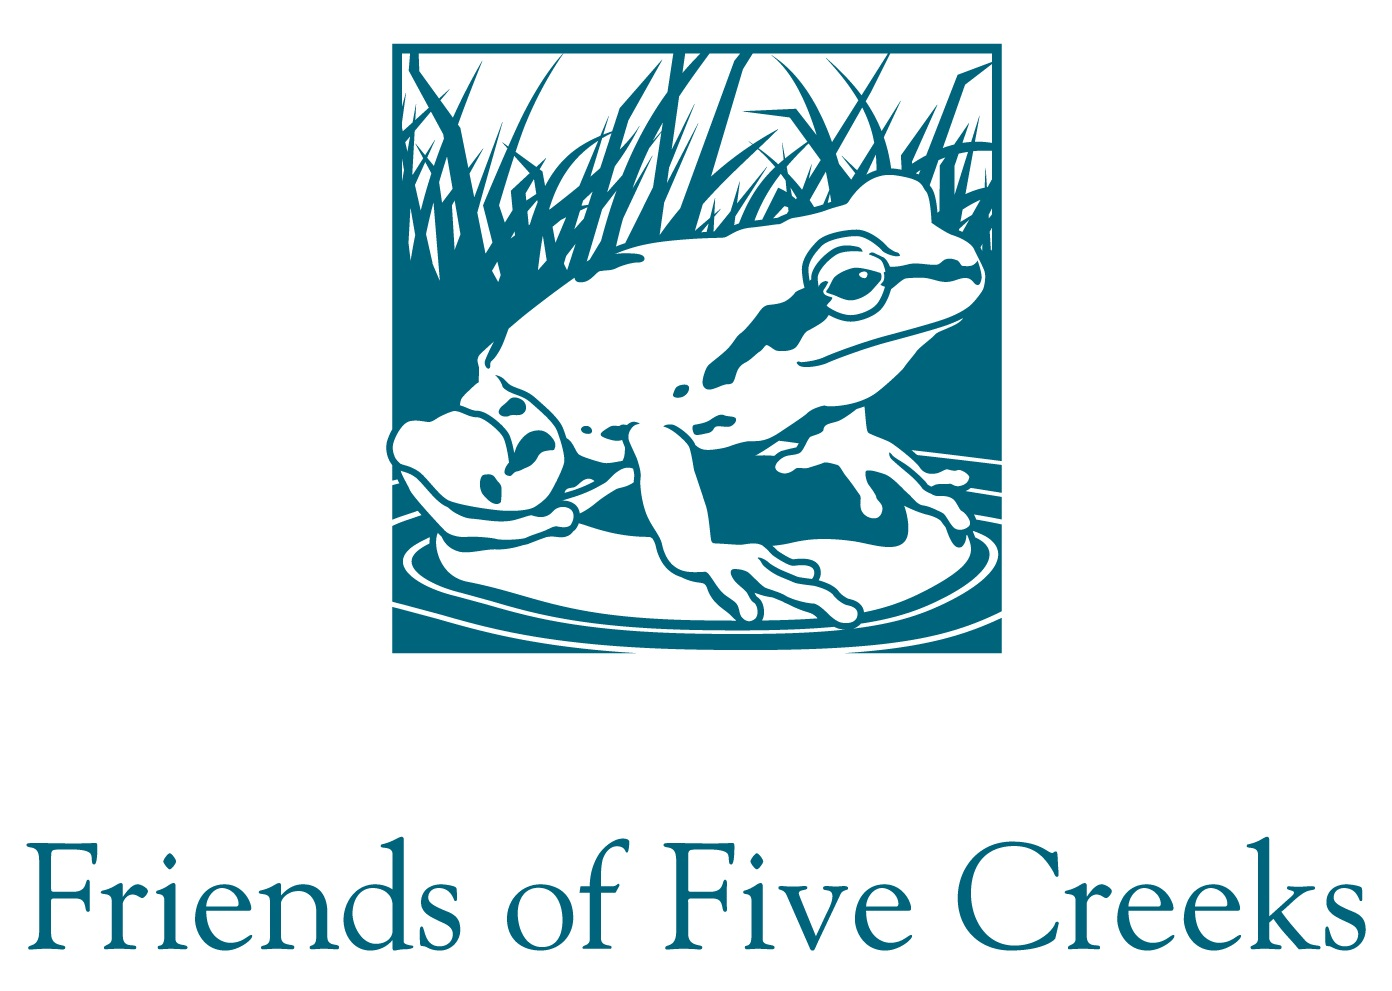 Friends of Five Creeks logo - link to website opens in new window